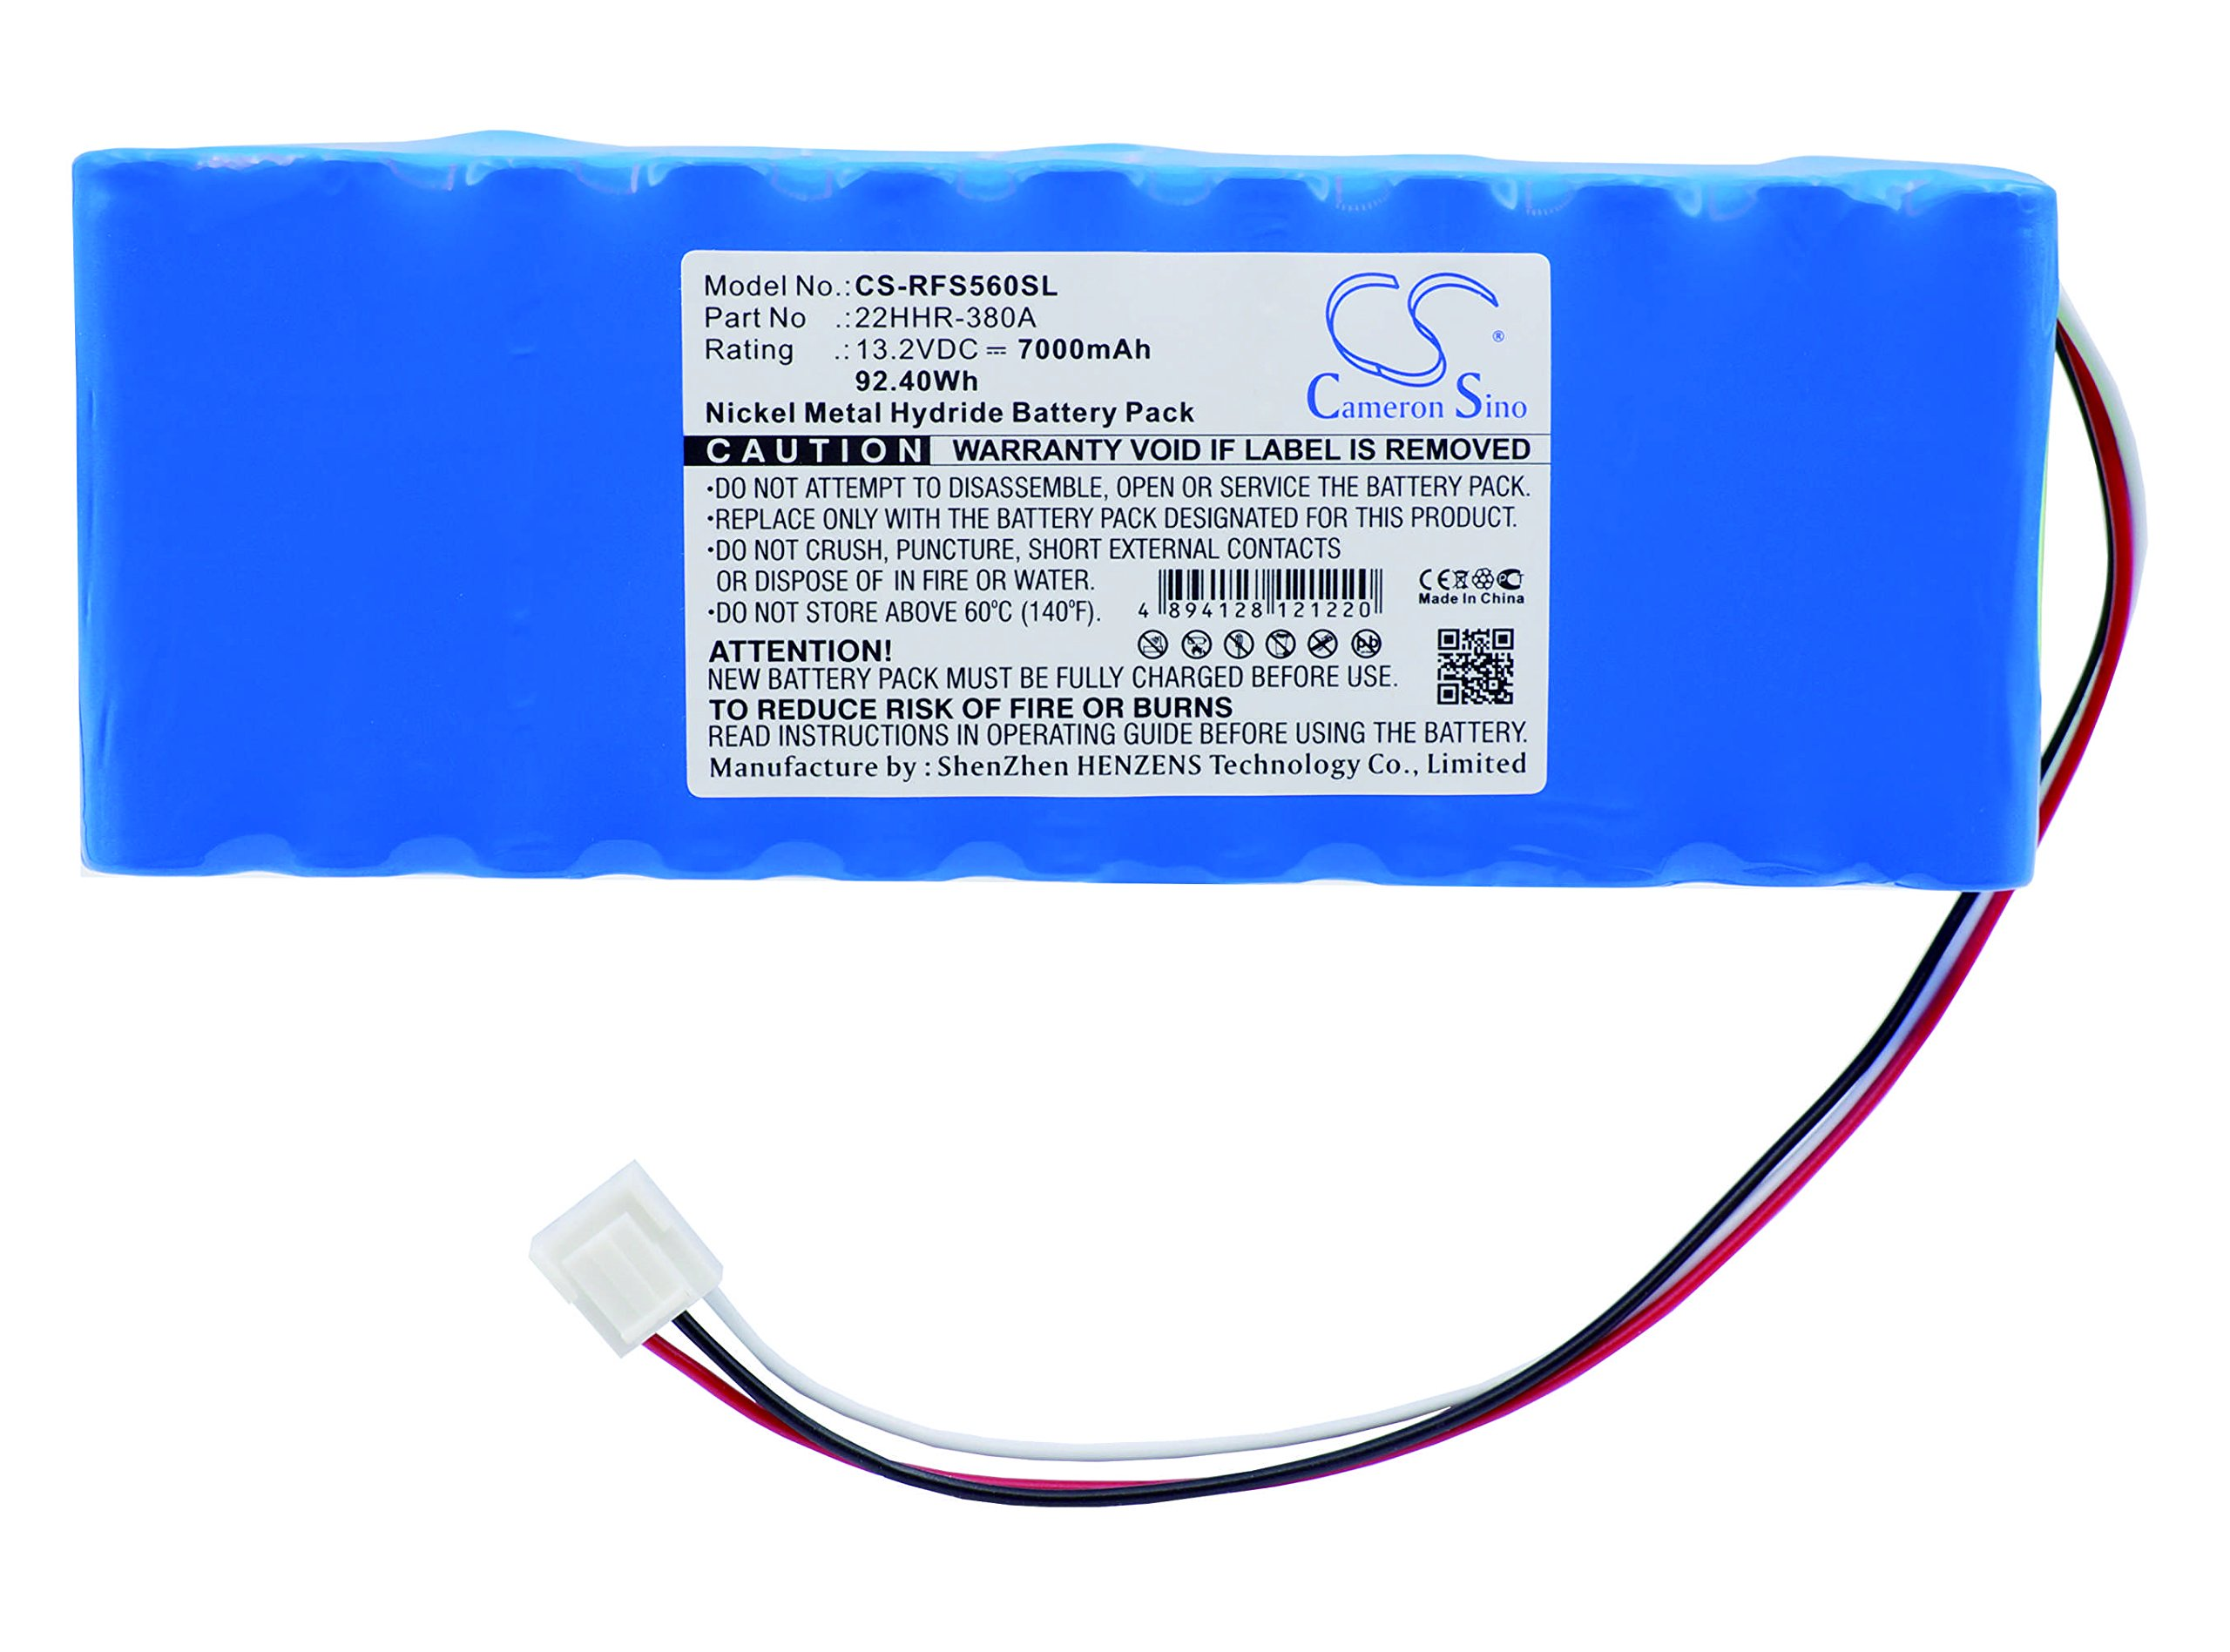 High Capacity Cameron Sino 7000 mAh Ni-MH Replacement Battery for Rohde & Schwarz Spectrum Analyzer 1102.5607.00, fits Rohde & Schwarz 22HHR-380A by Cameron Sino